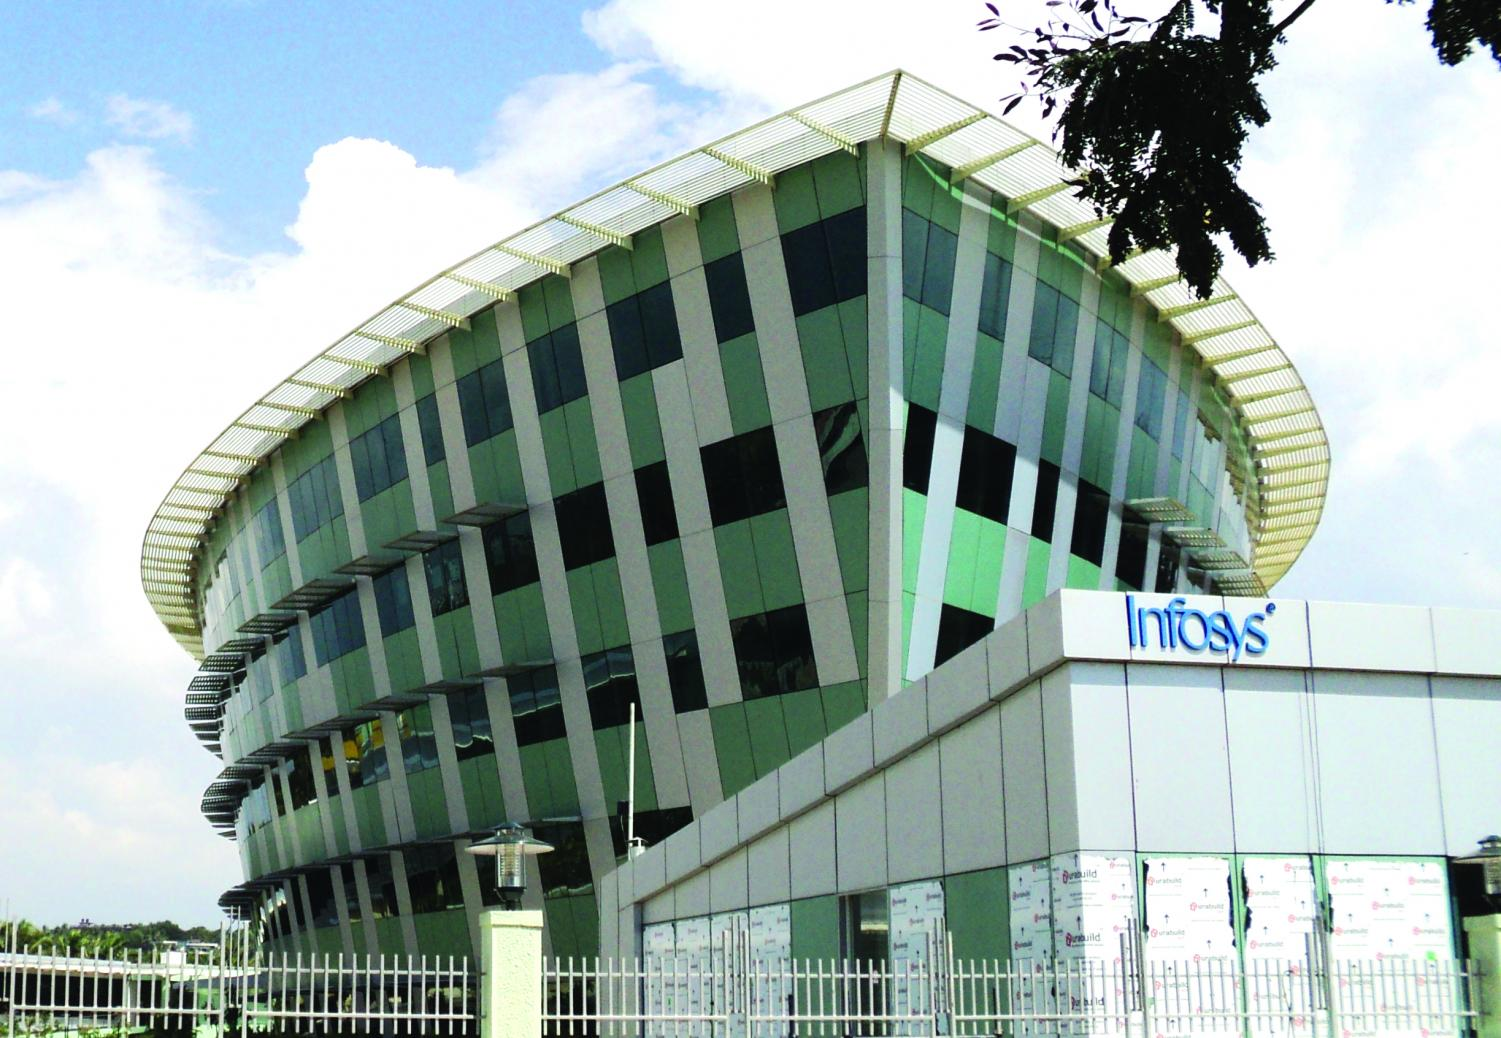 This building is home to the Infosys office in Thiruvanathapuram, India. Infosys is partnering with the University to provide expertise in artificial intelligence.